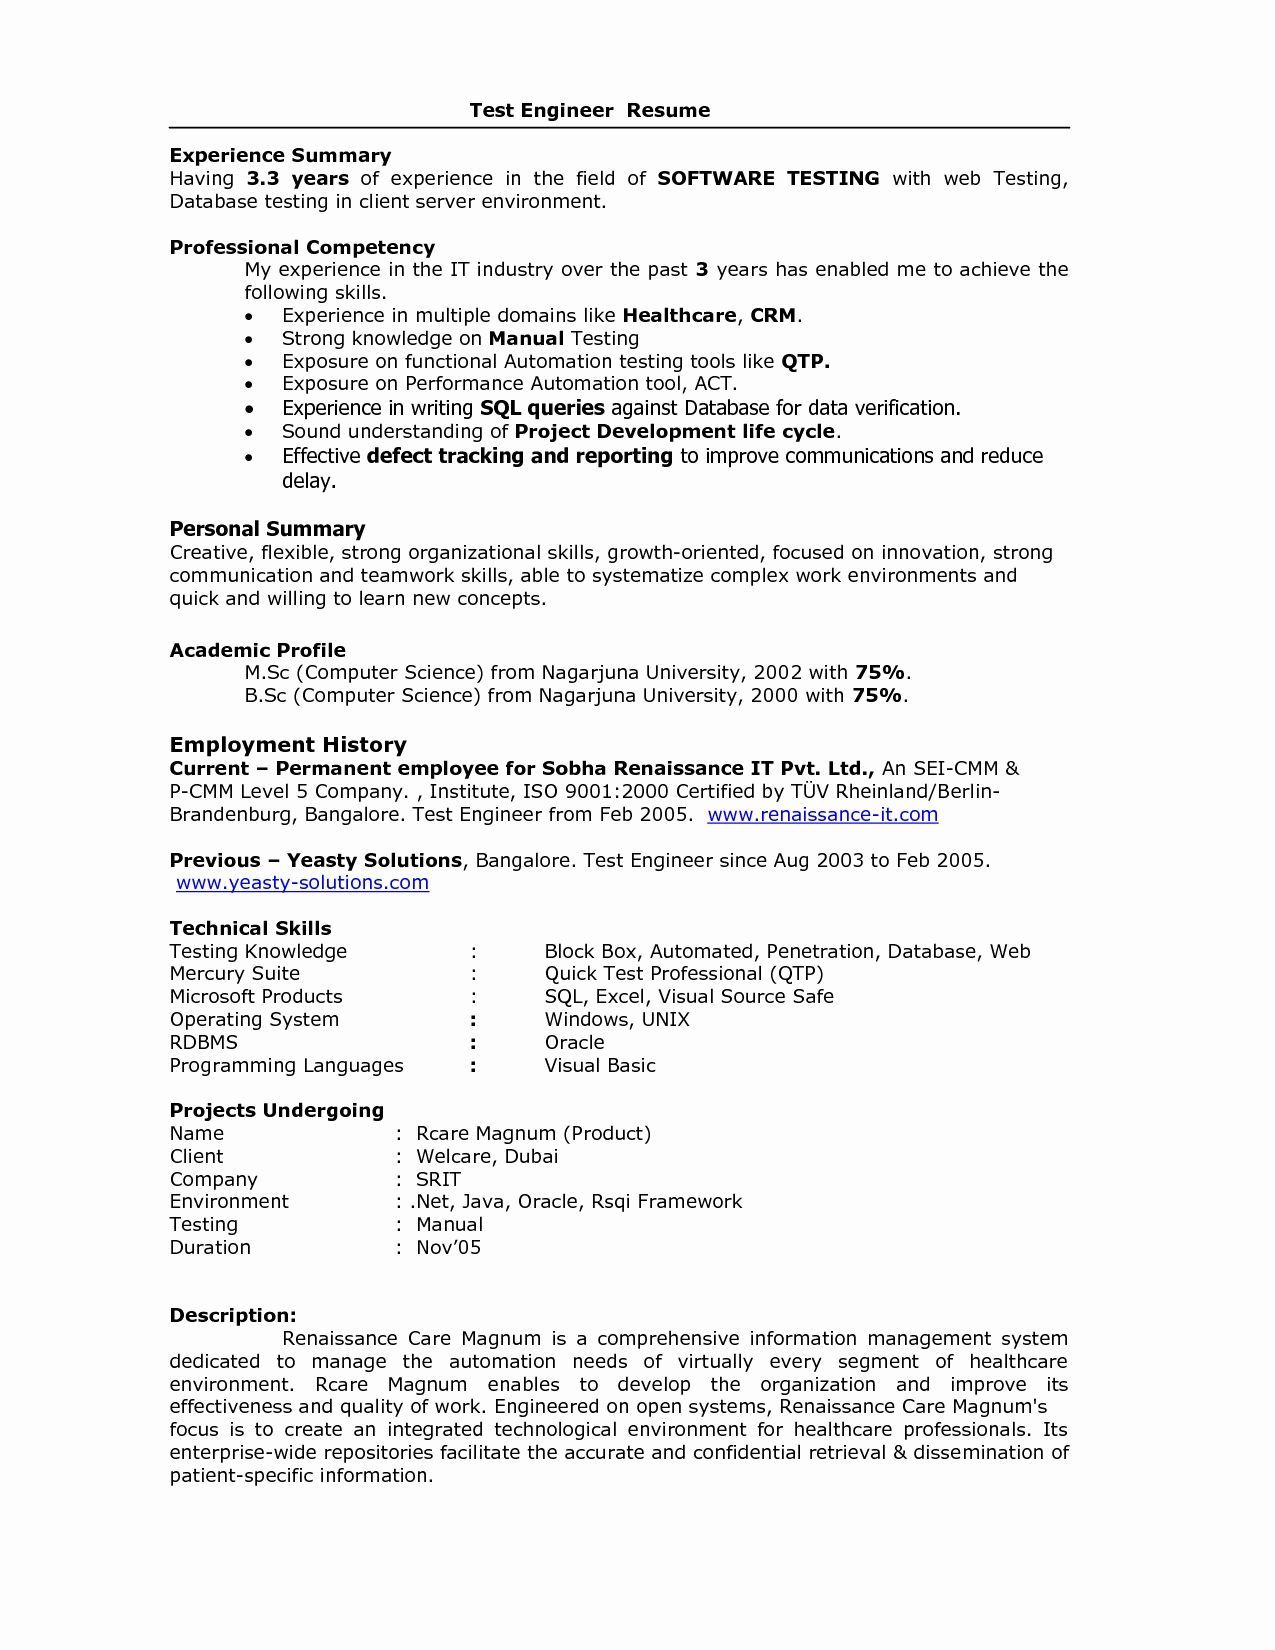 5 years testing experience resume format pinterest sample